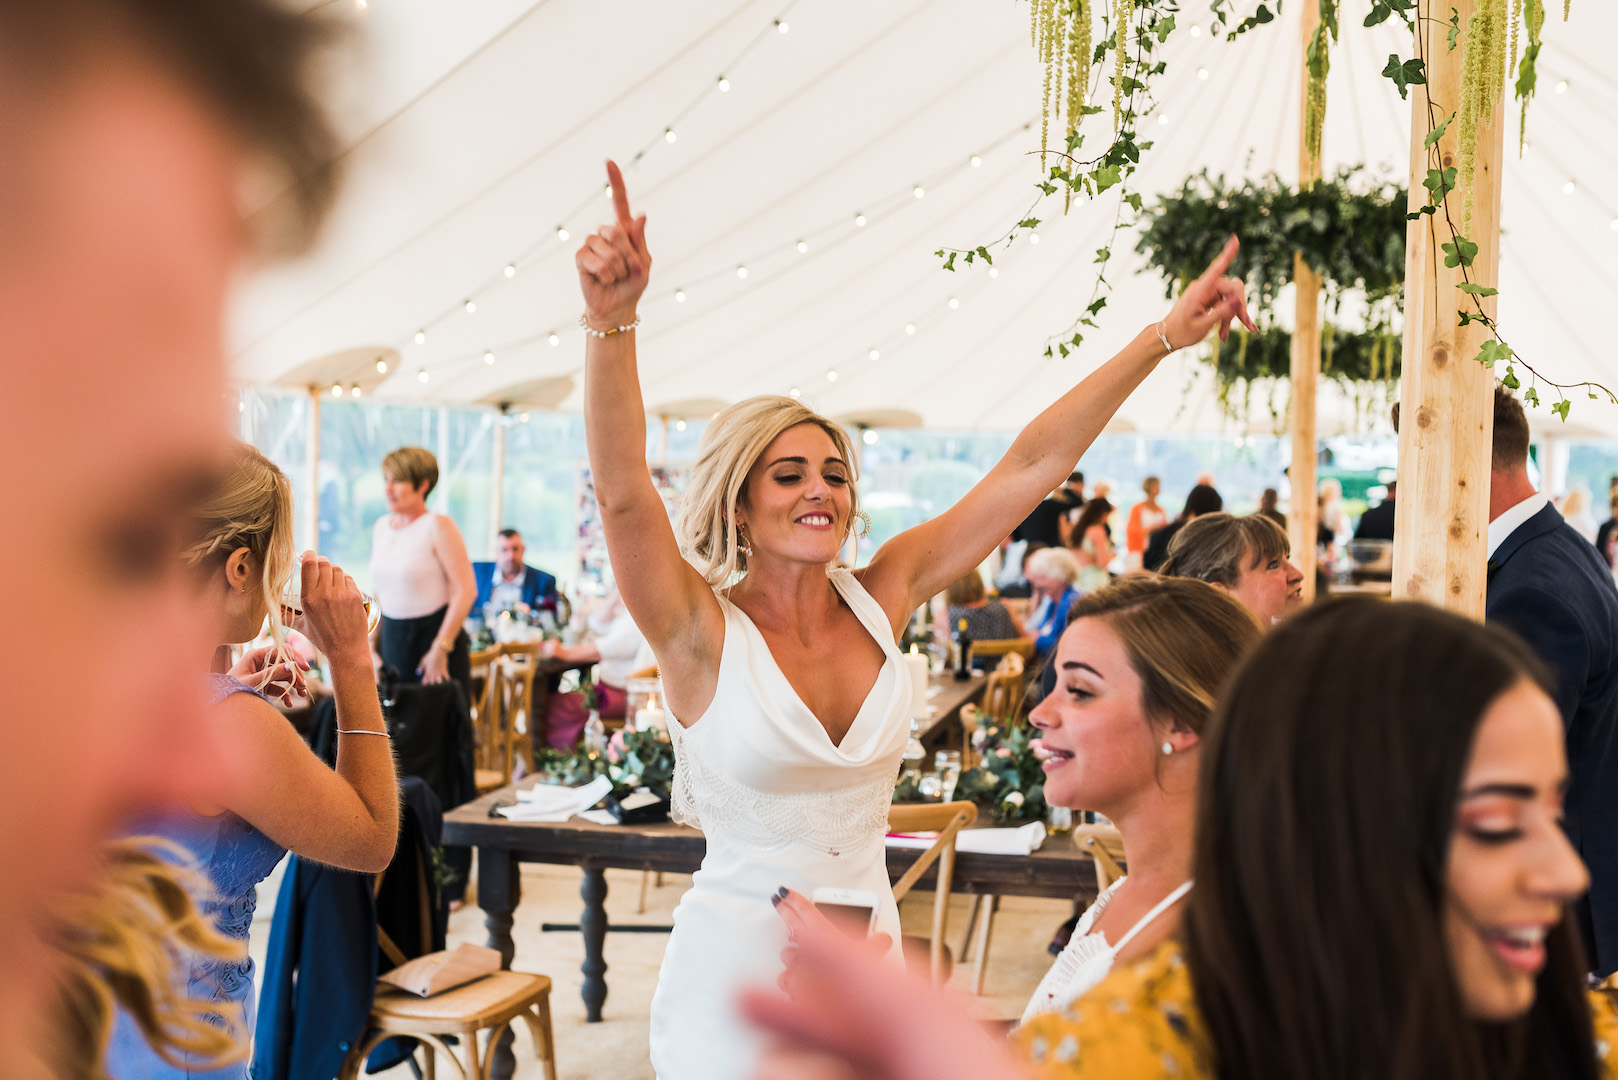 Sarah and Joe's PapaKata Sperry Wedding: Sperry tent interior by Paul Mockford Photography